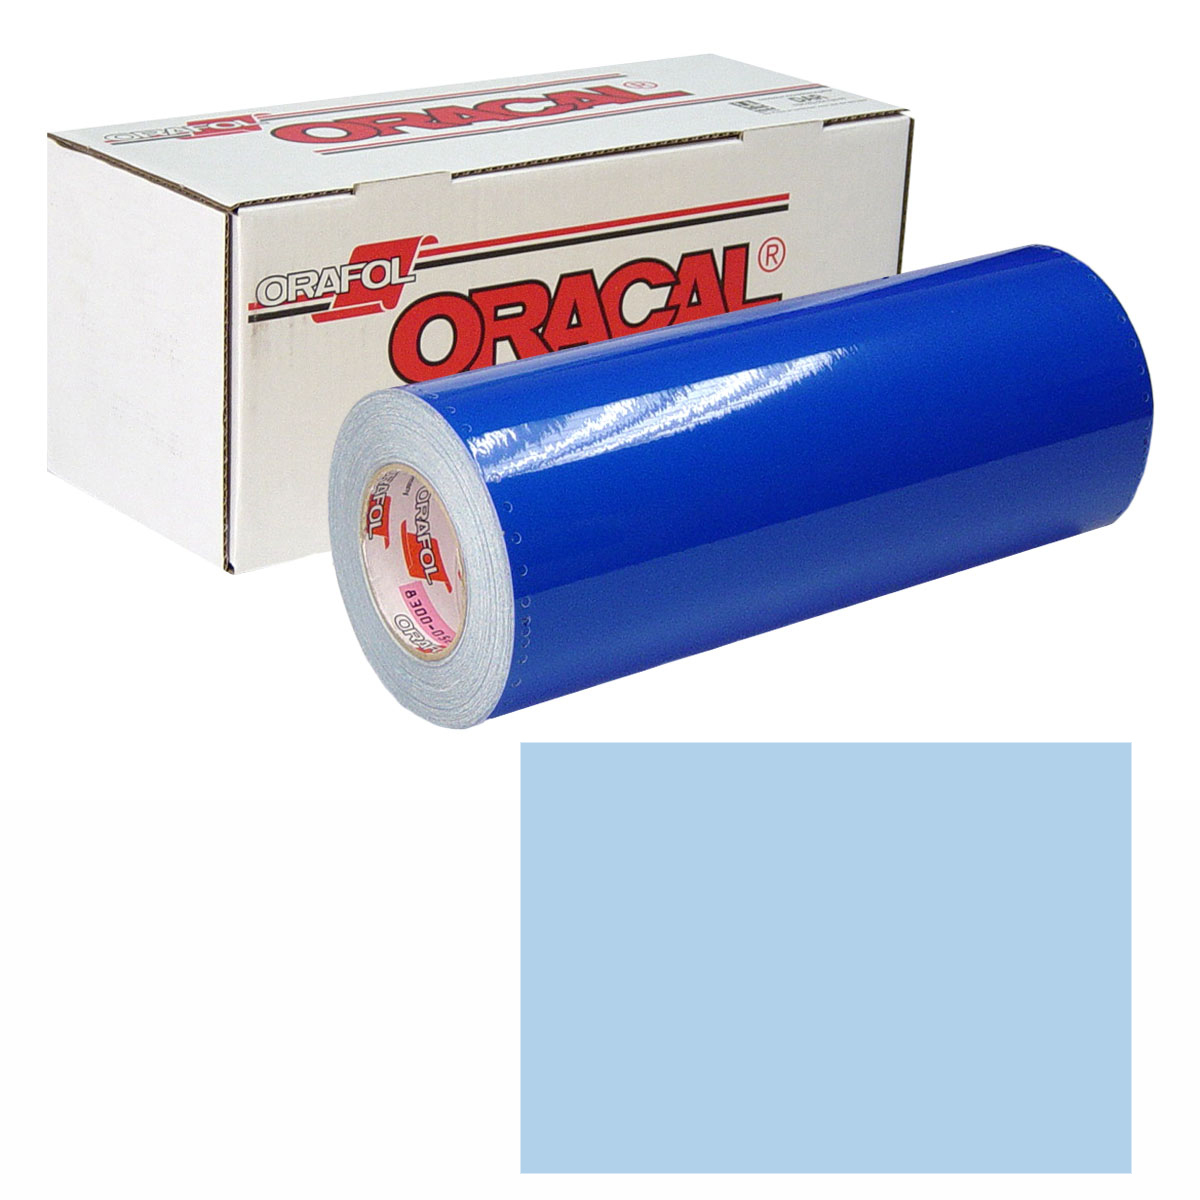 ORACAL 631 Unp 24In X 10Yd 172 Powder Blue